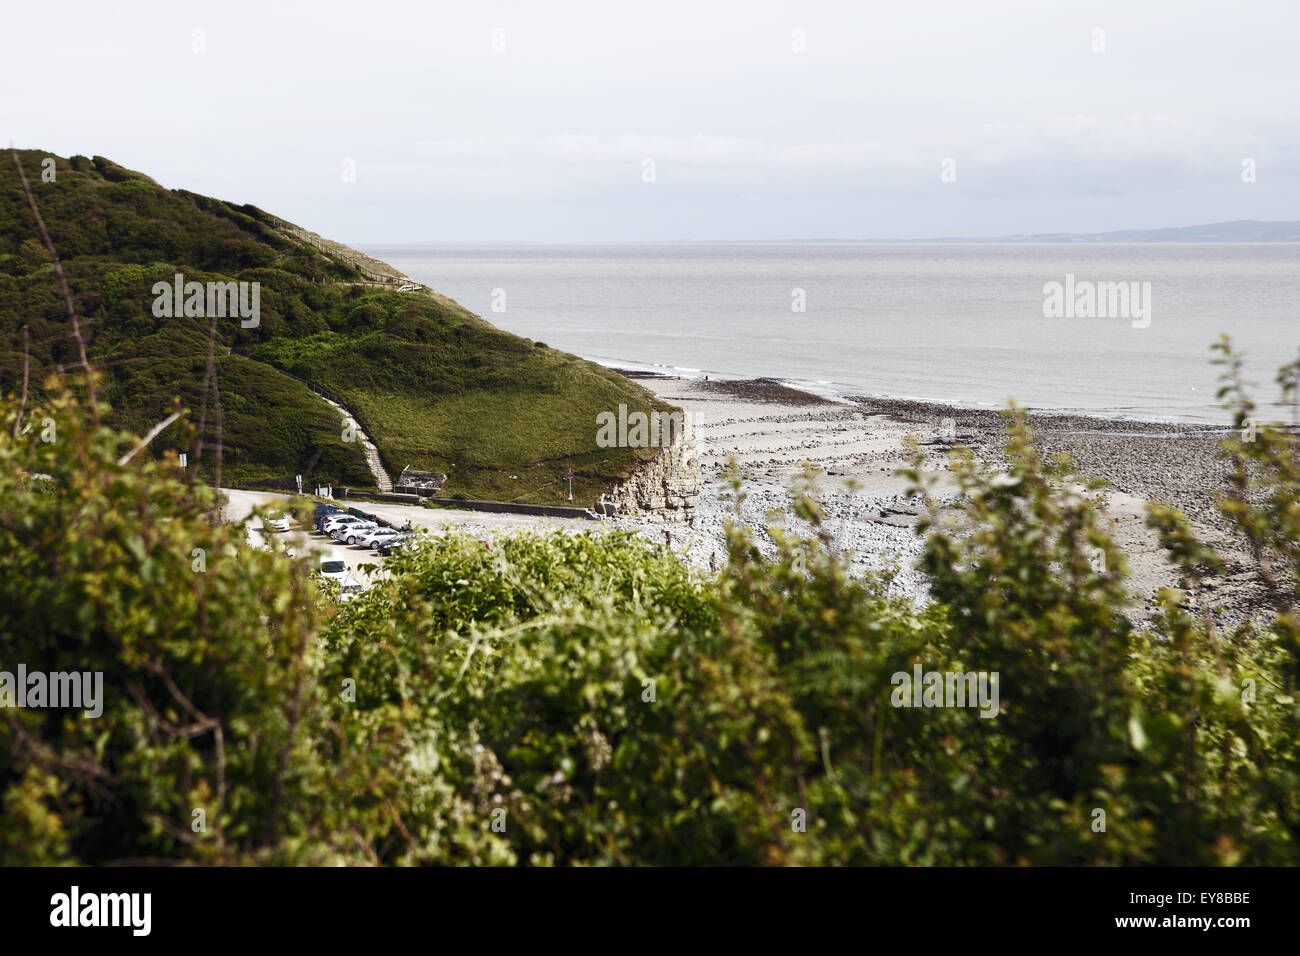 Llantwit Major Beach, at the heart of the Vale of Glamorgan, one of many on the Wales Coast Path - Llwybr Arfordir - Stock Image